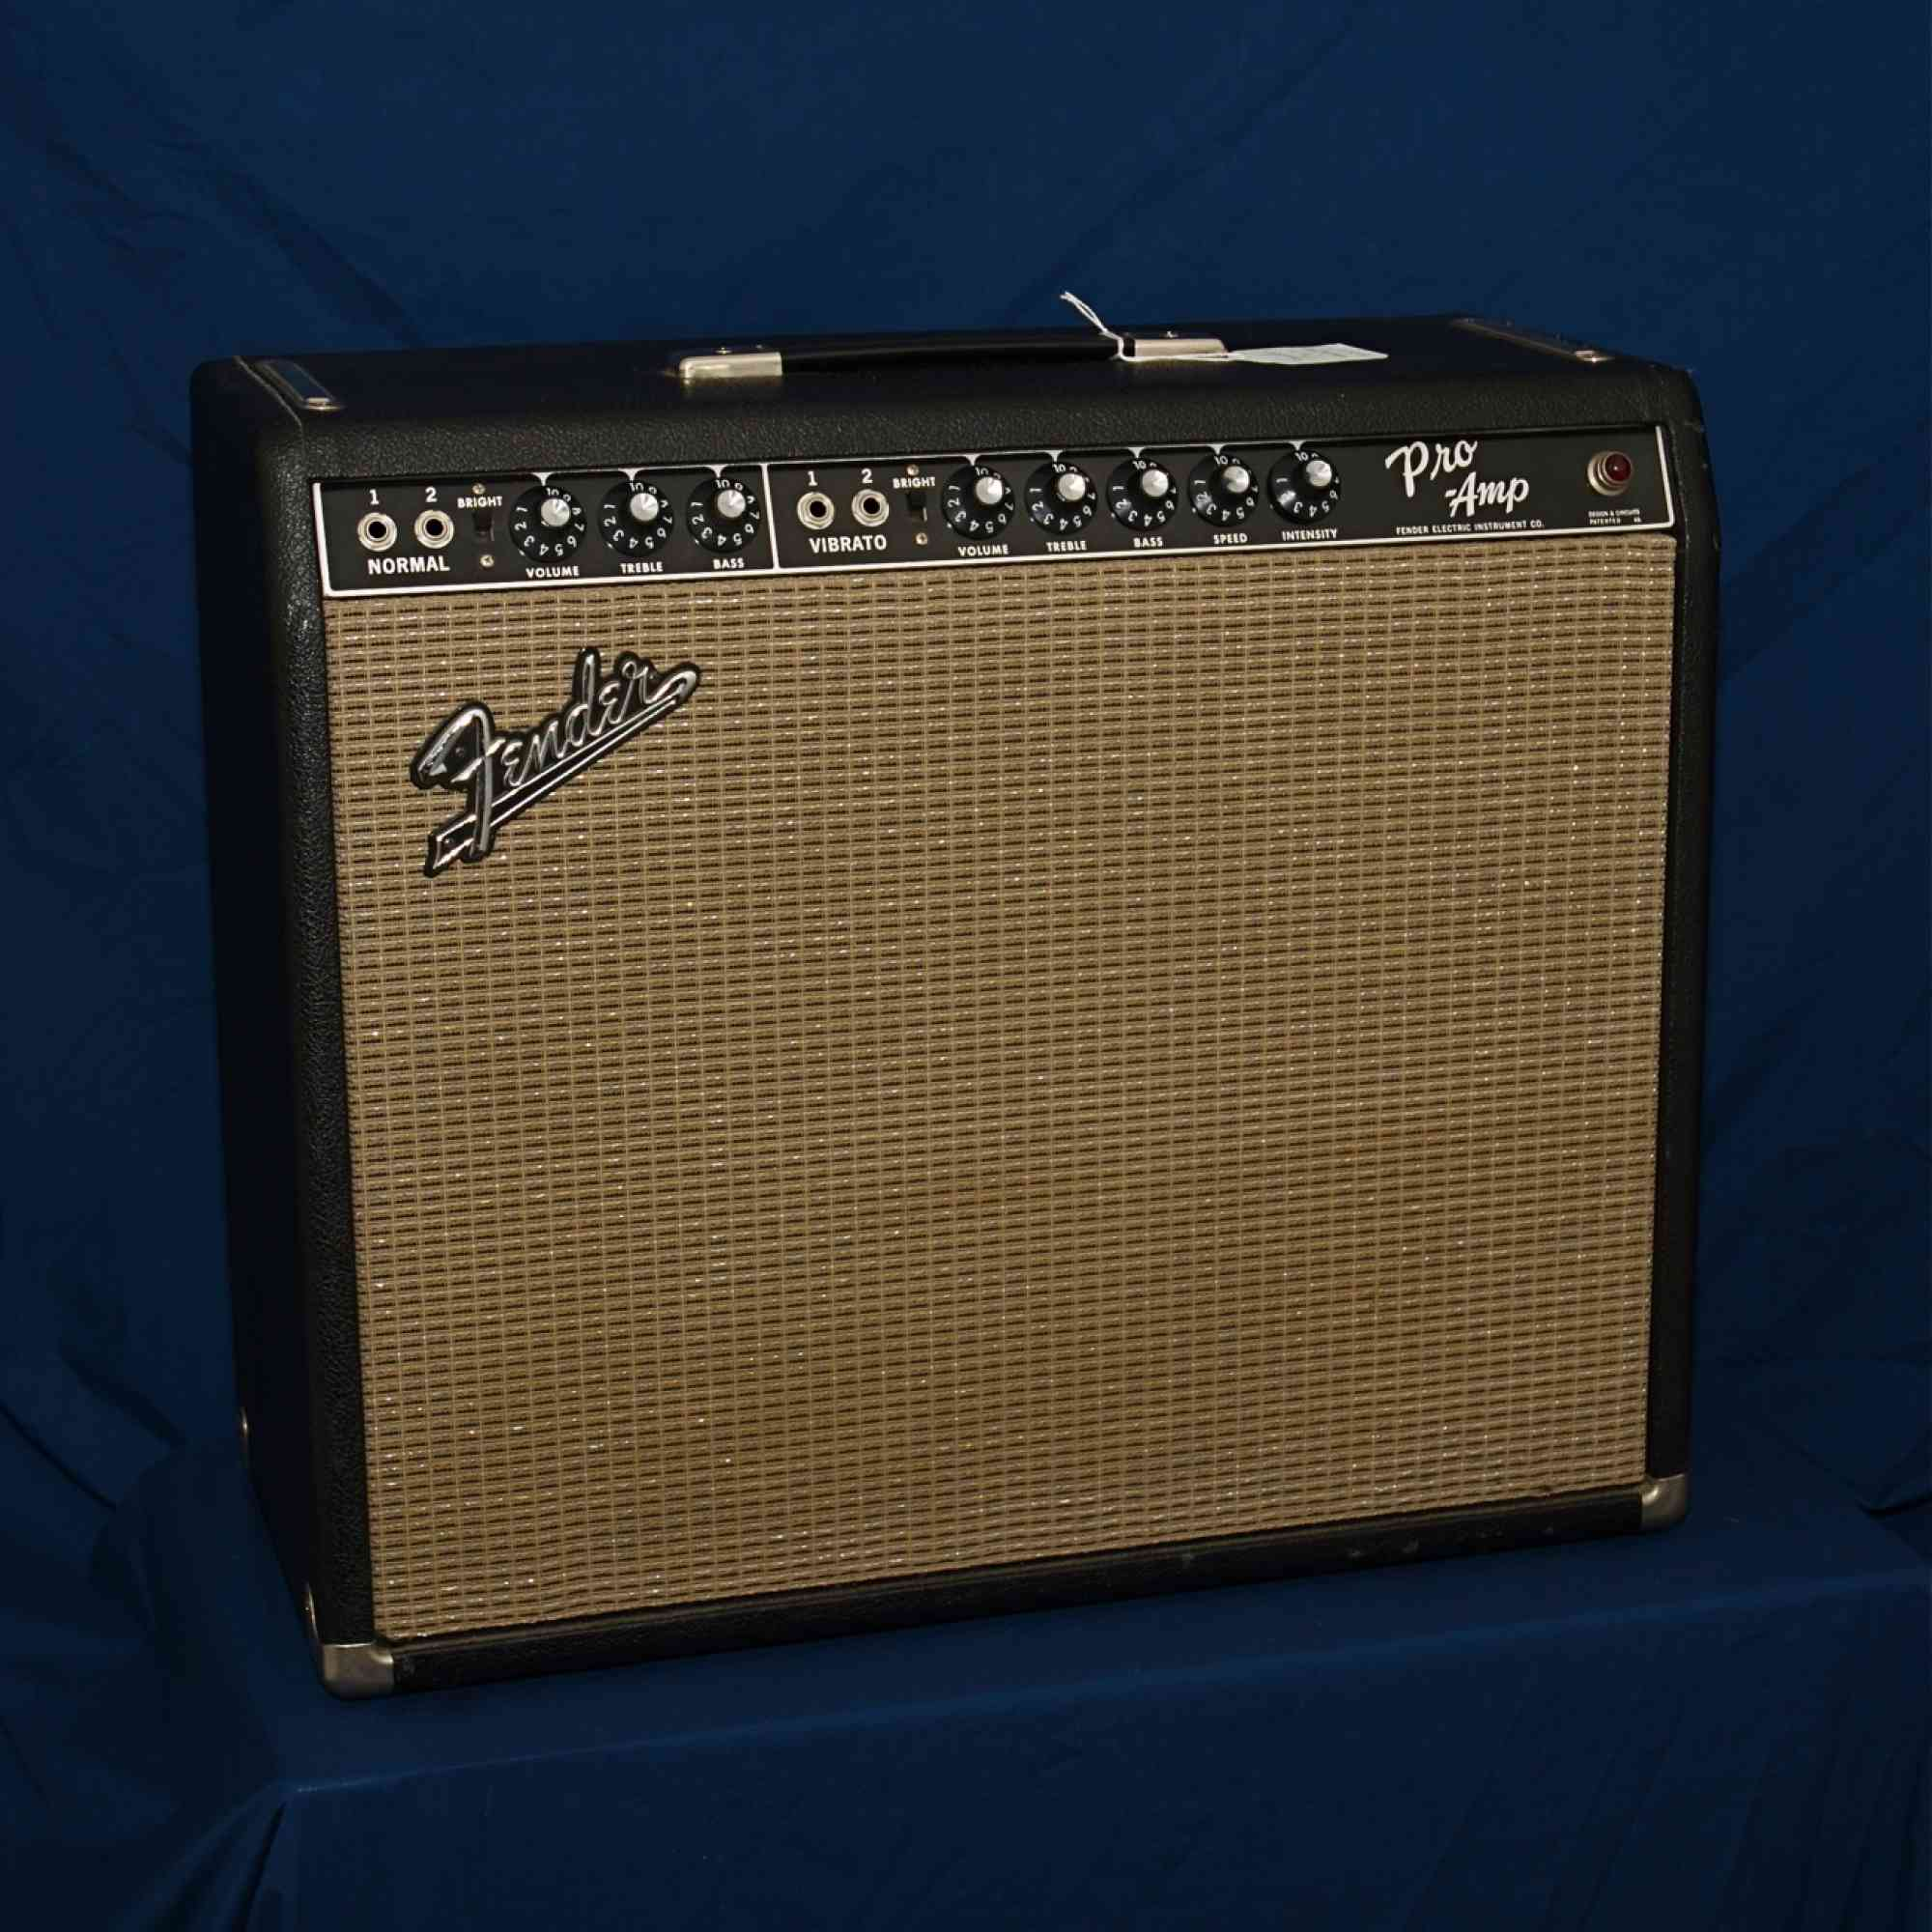 Fender Pro Amp '65 blackface. Click to enlarge